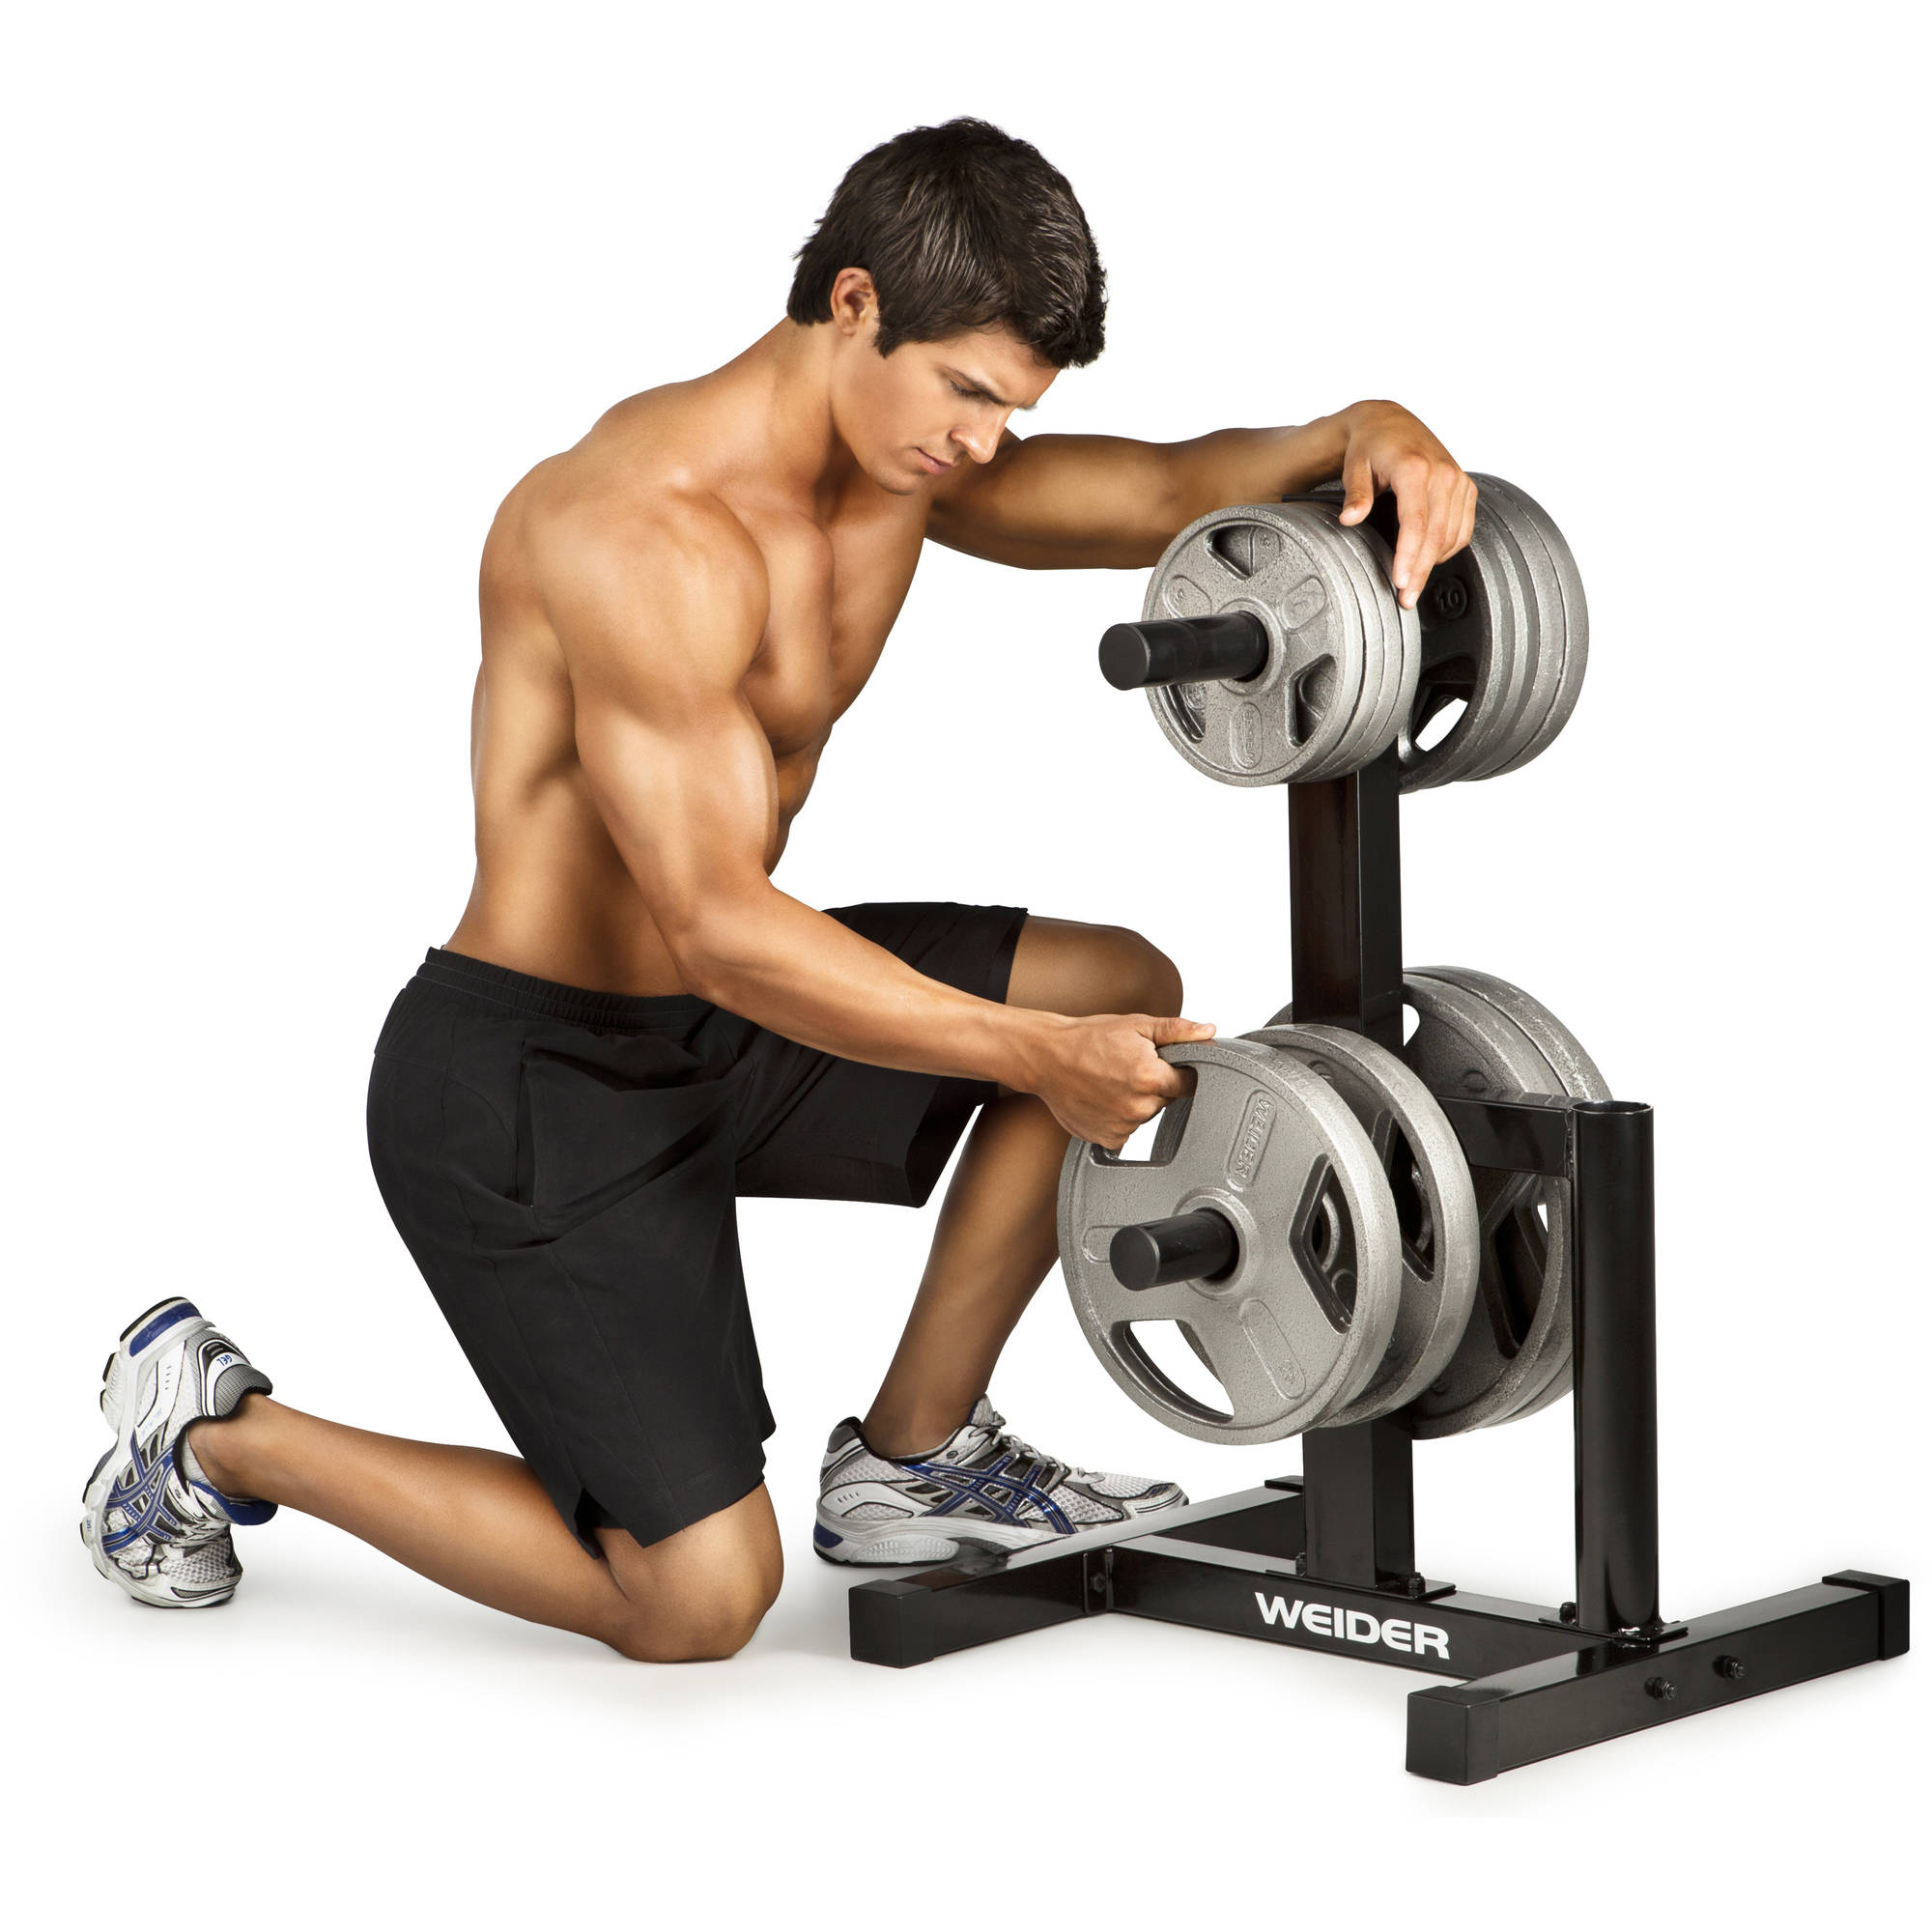 Weider Olympic-Sized Rack